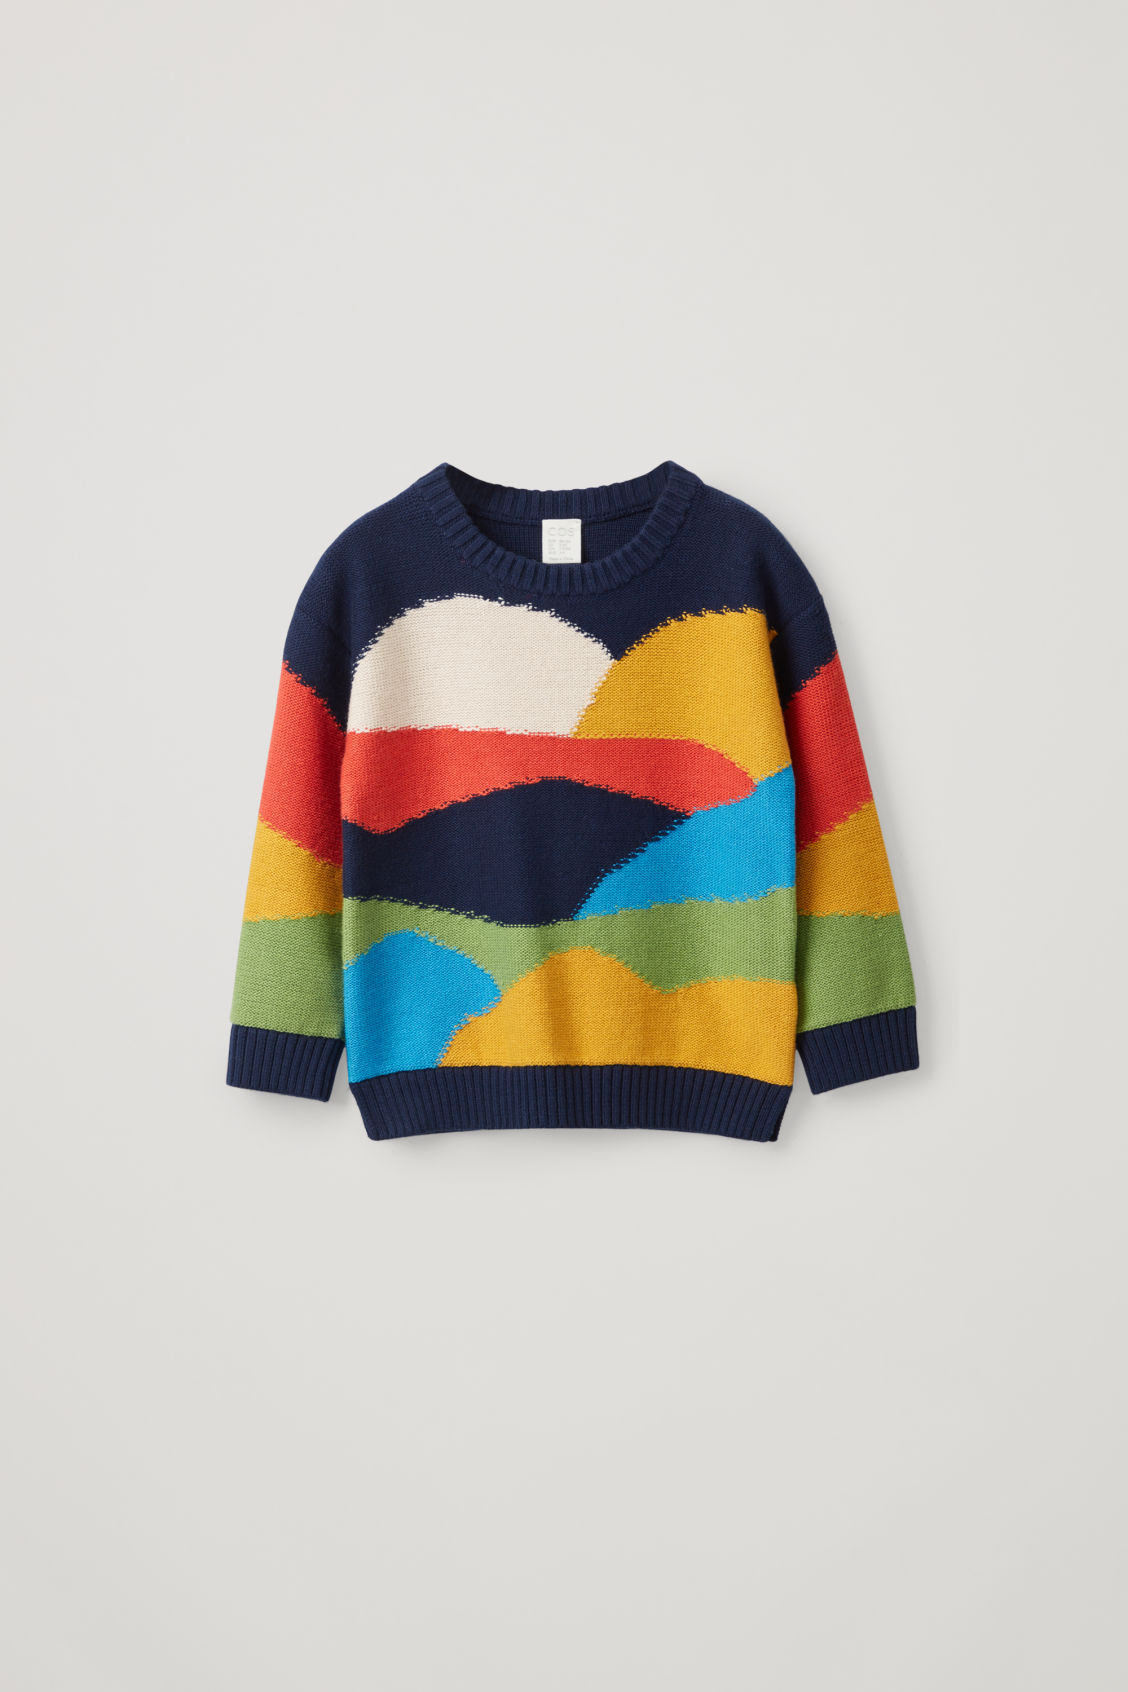 Cos Kids' Colour-block Cotton-wool Mix Jumper In Blue